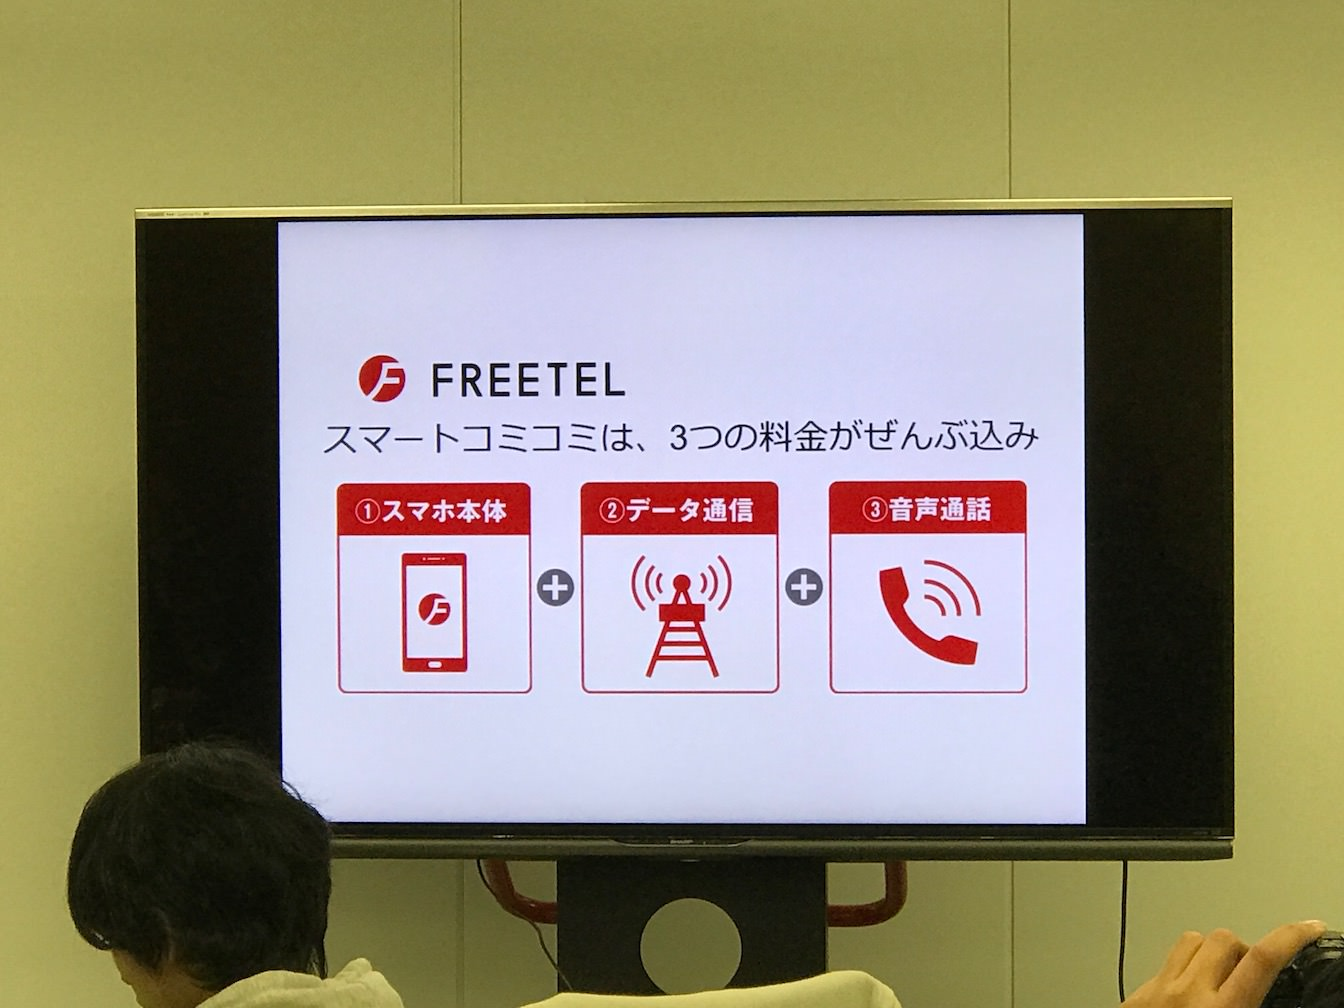 Freetel blogger event 2016 winter 17